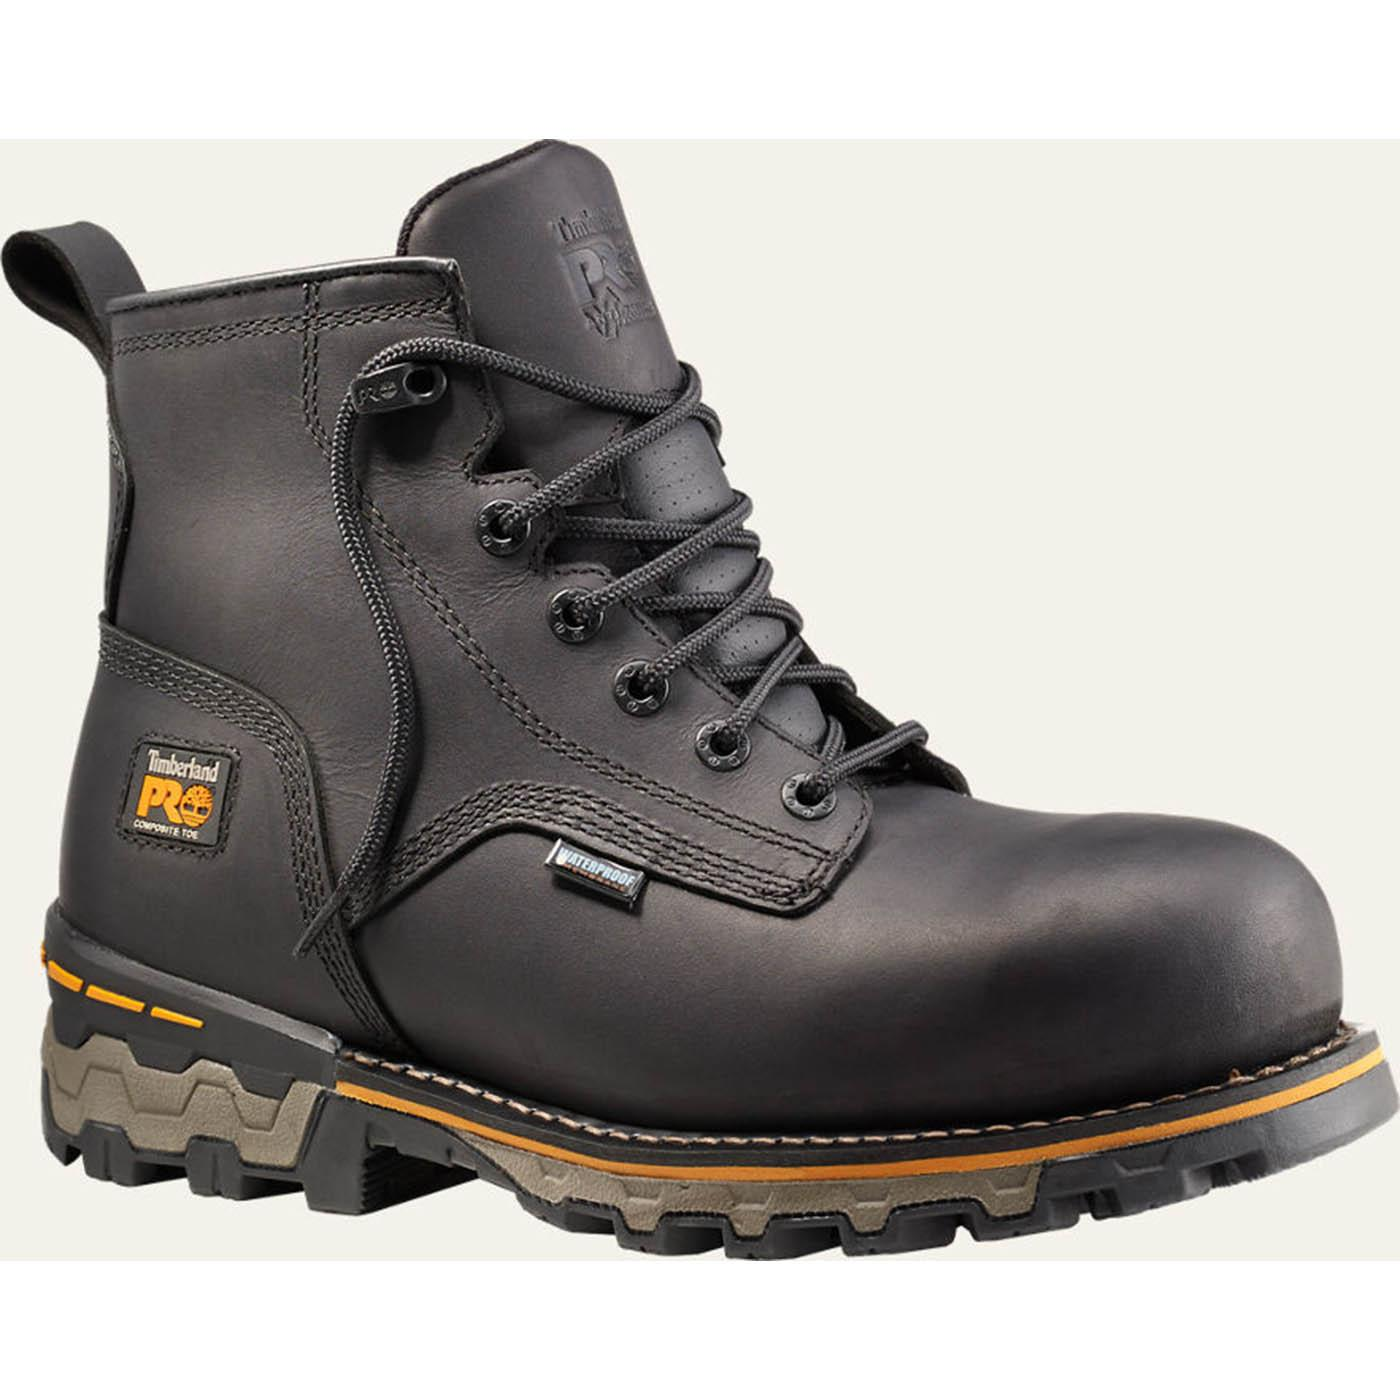 Timberland PRO Boondock Composite Toe Waterproof Work BootTimberland PRO  Boondock Composite Toe Waterproof Work Boot e906956a1